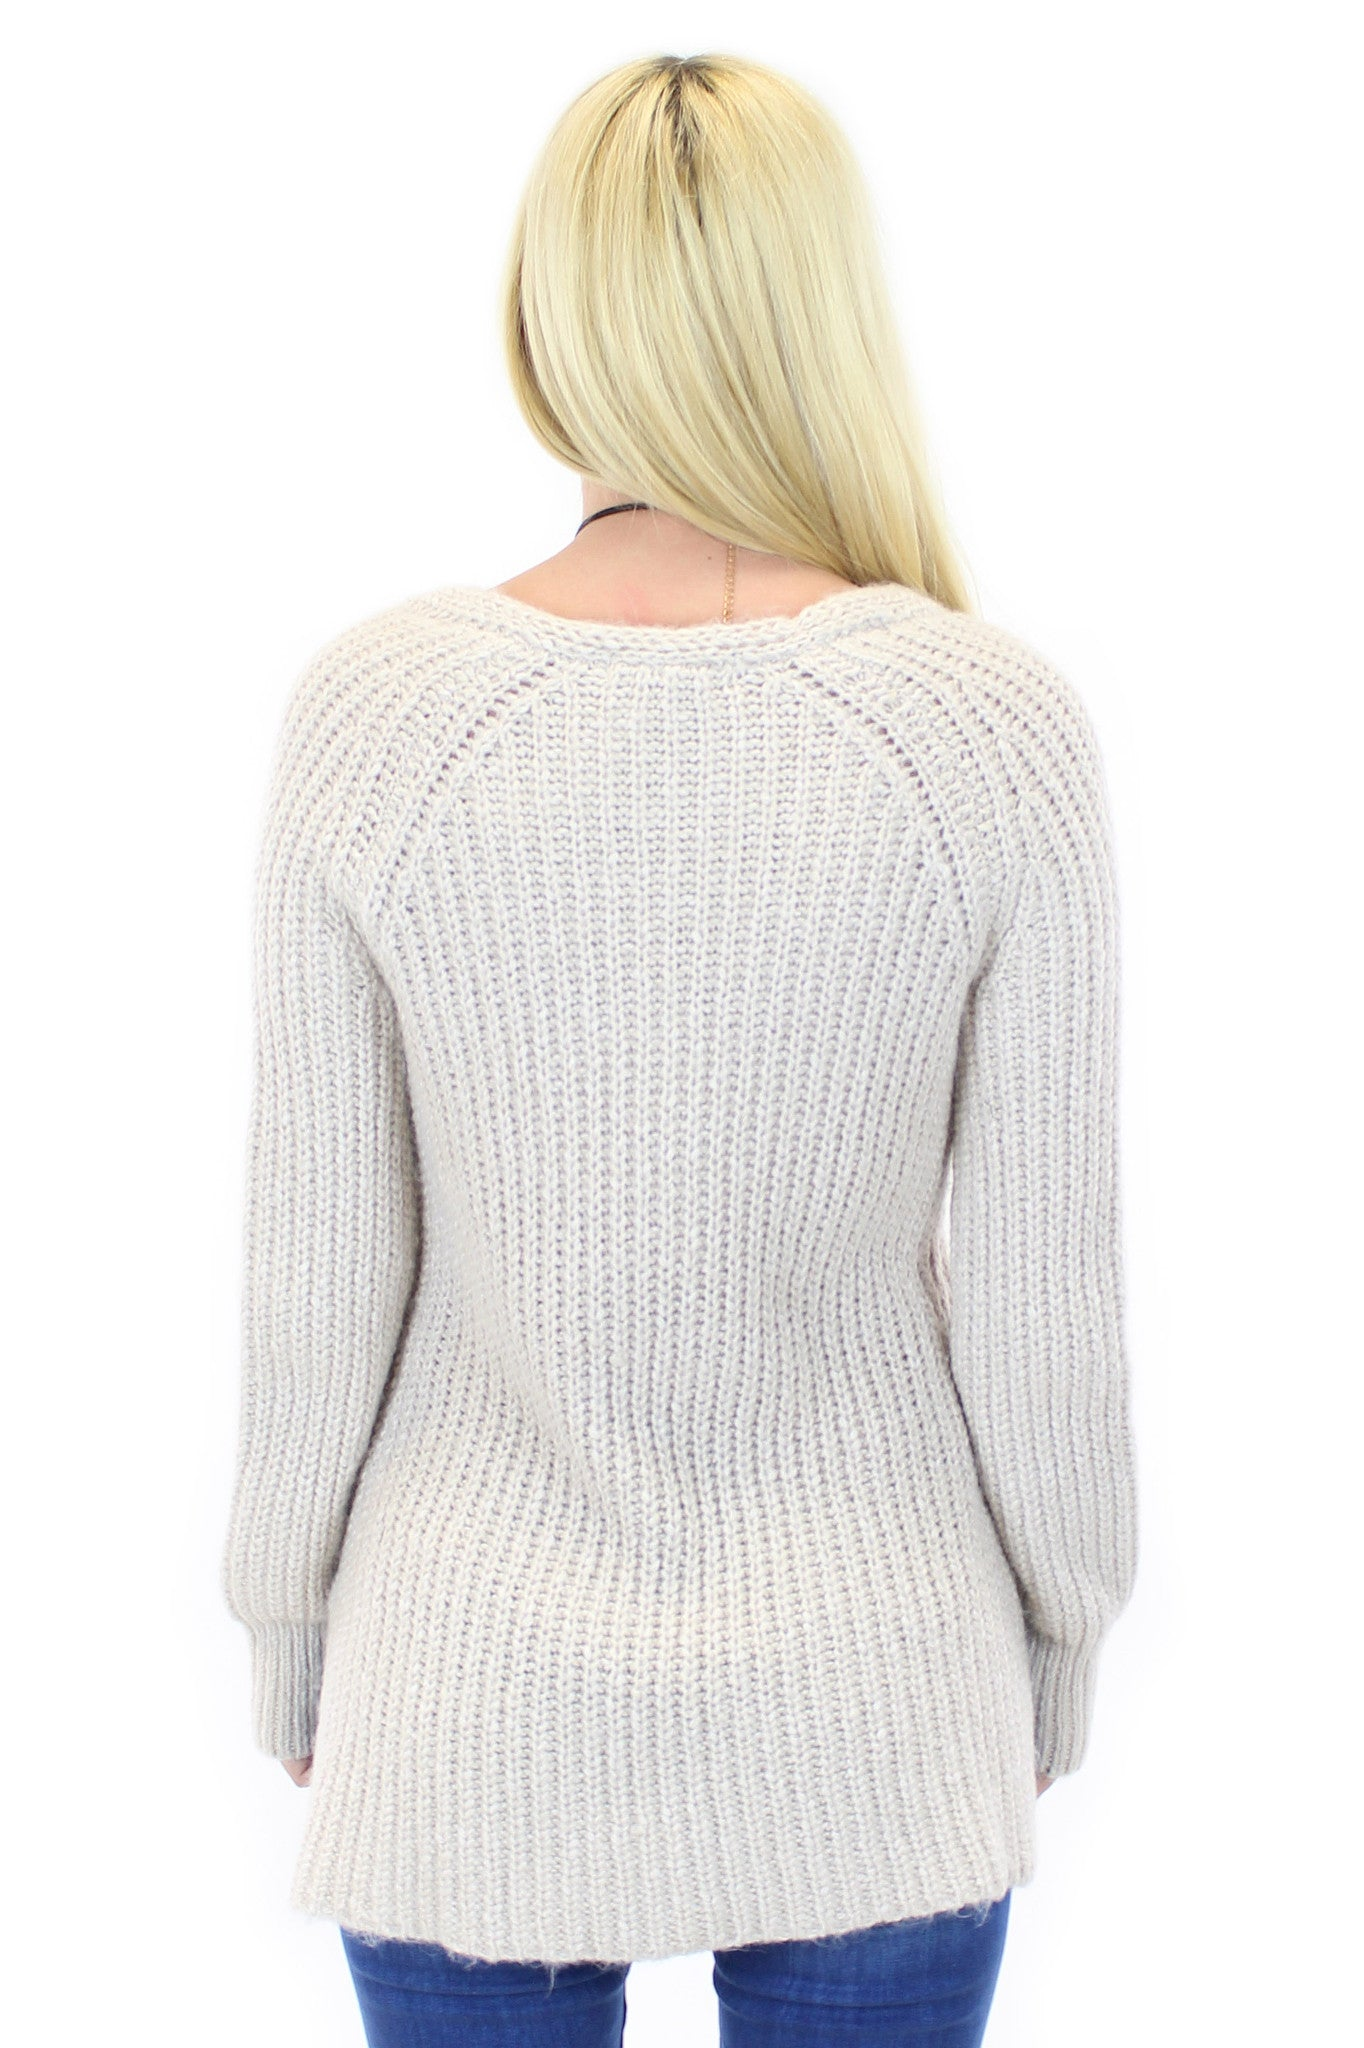 sanctuary | sequoia v neck sweater in marled champagne - klōthe - 3